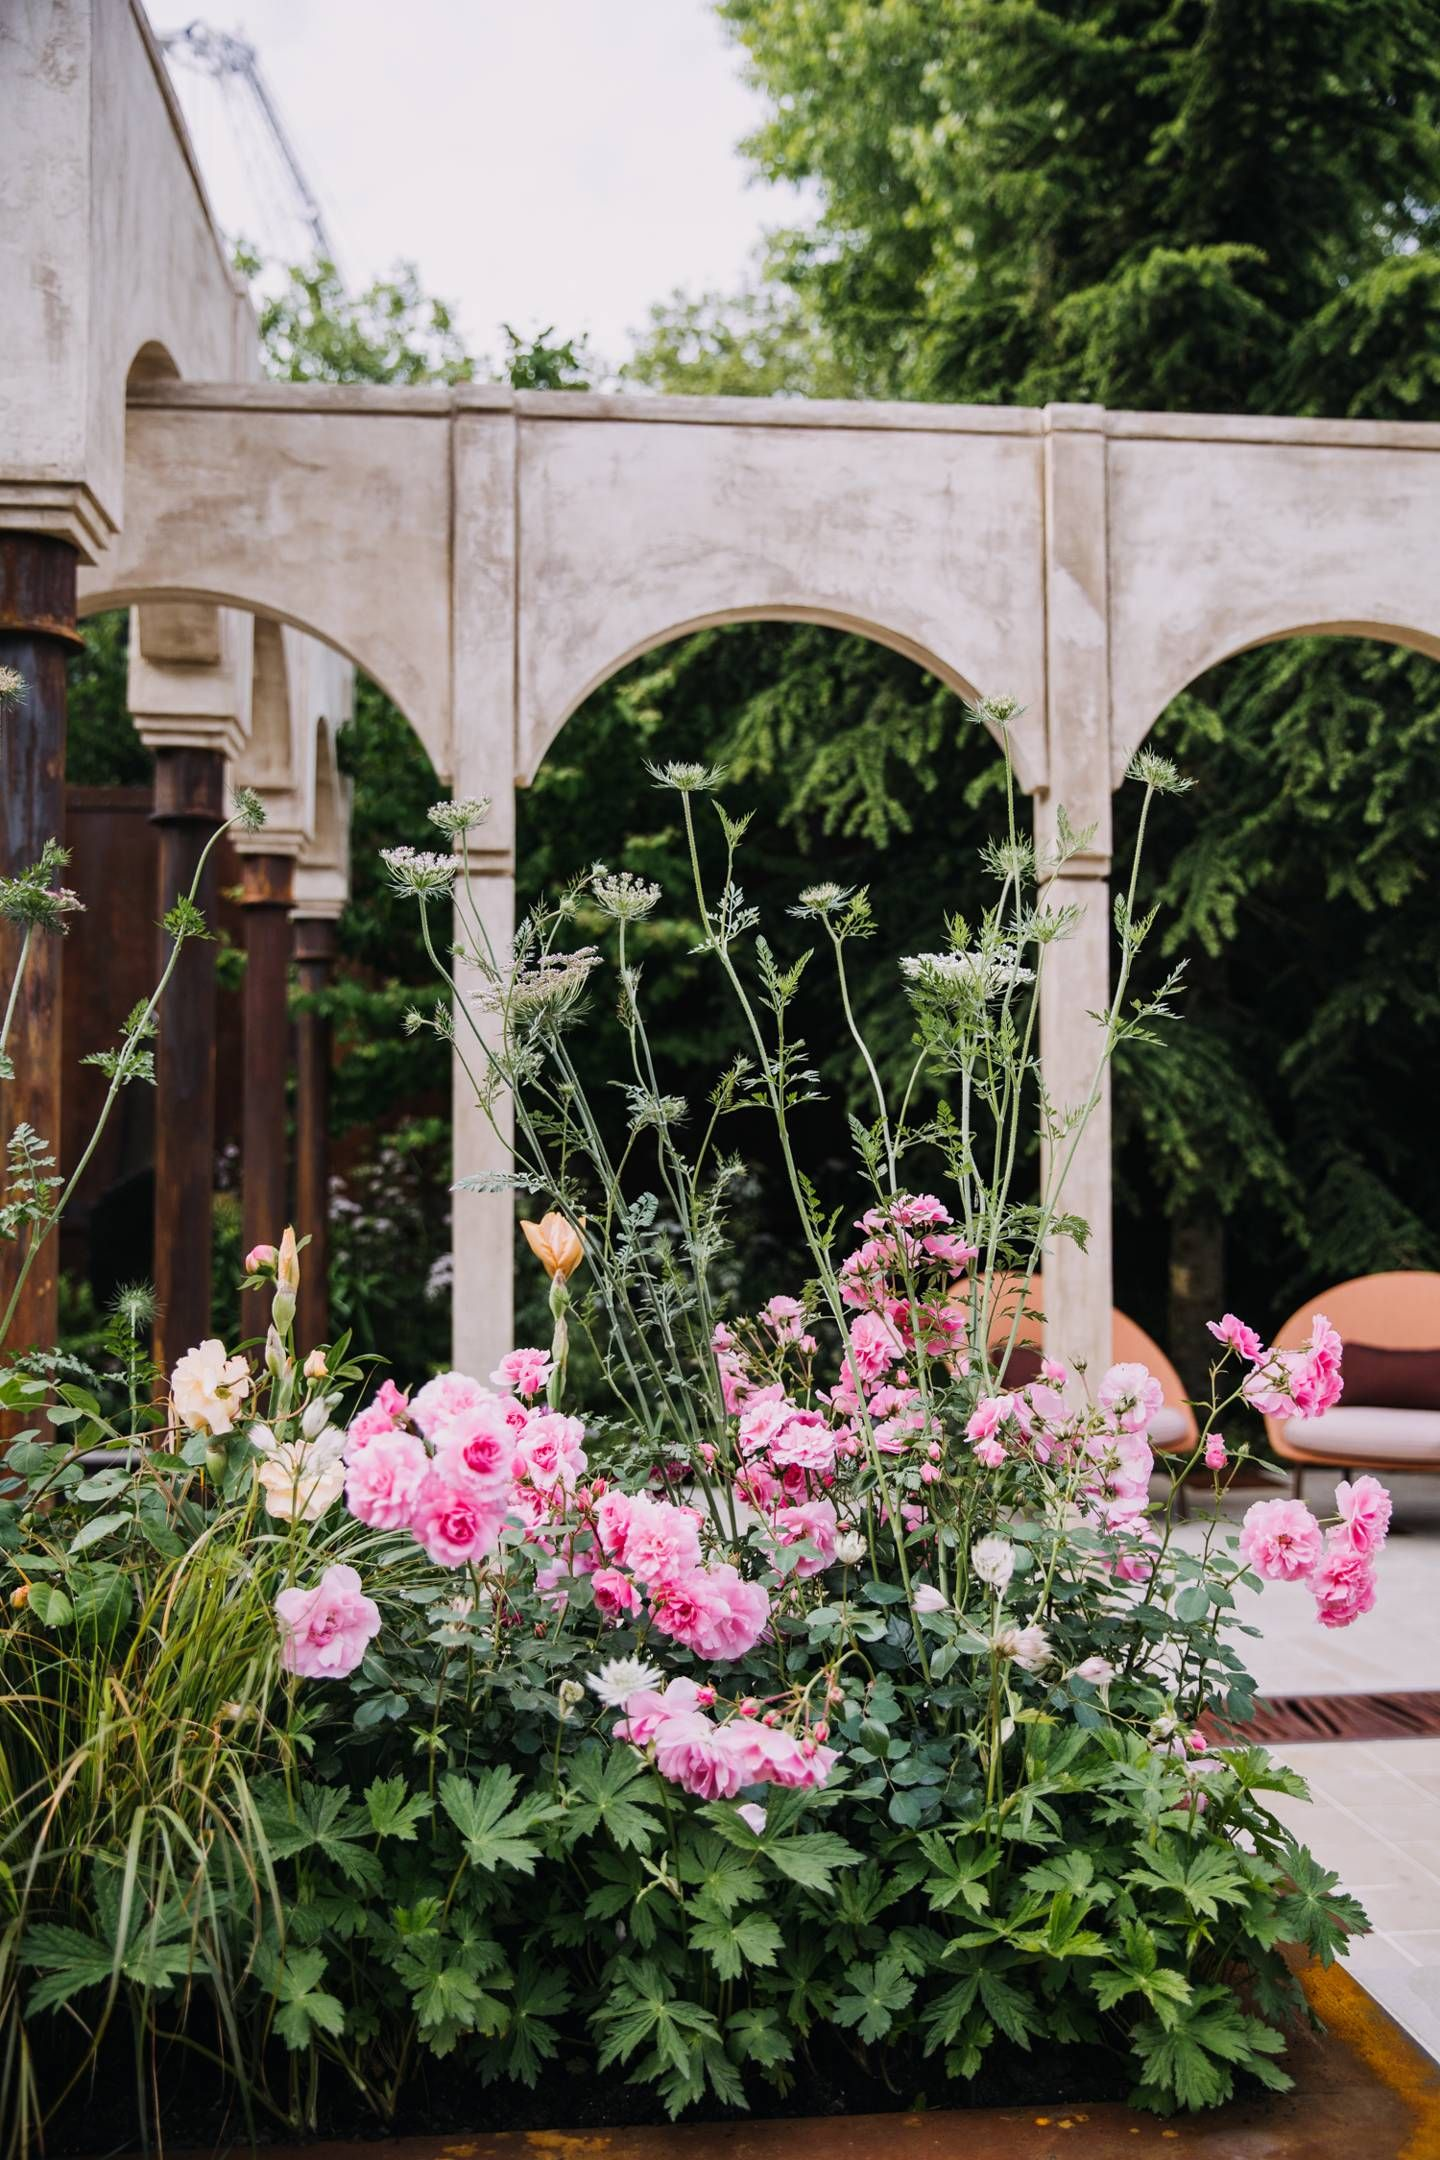 Our Garden Editor Clare Foster S Highlights From The Chelsea